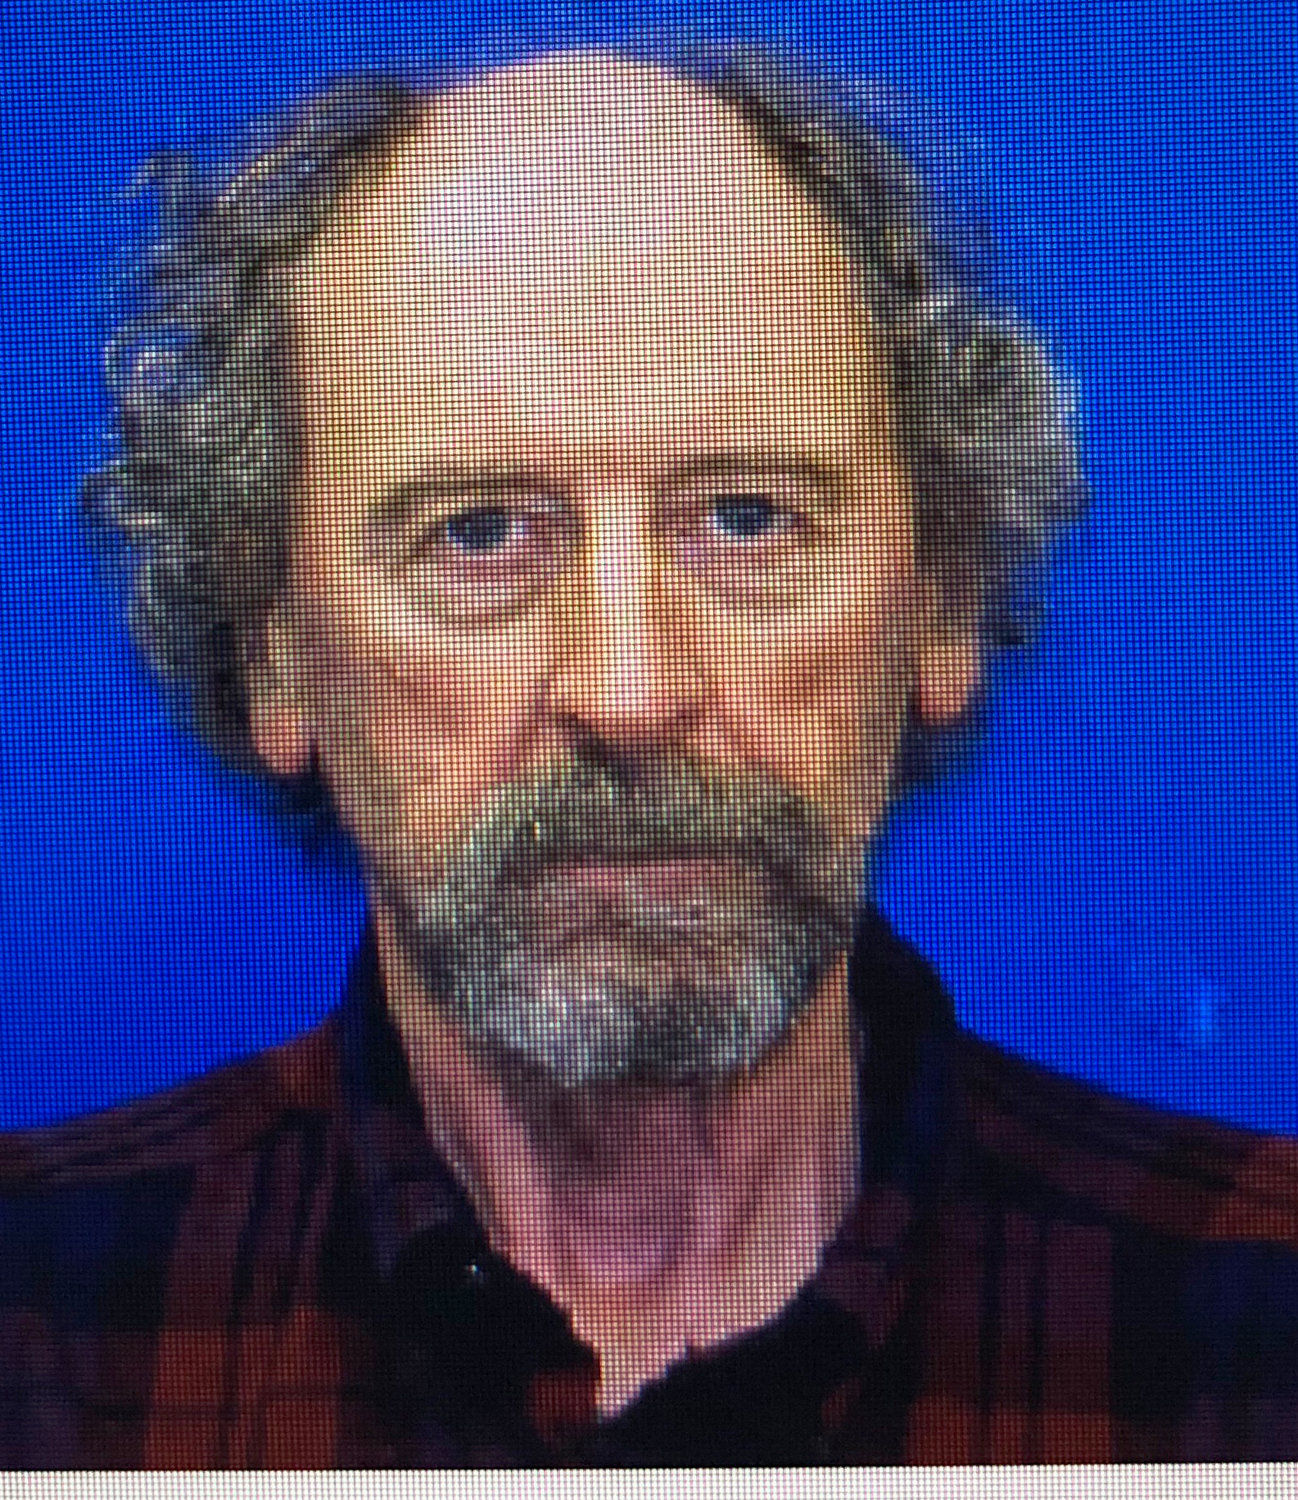 Remains recovered from Taos Ski Valley believed to be those of missing skier